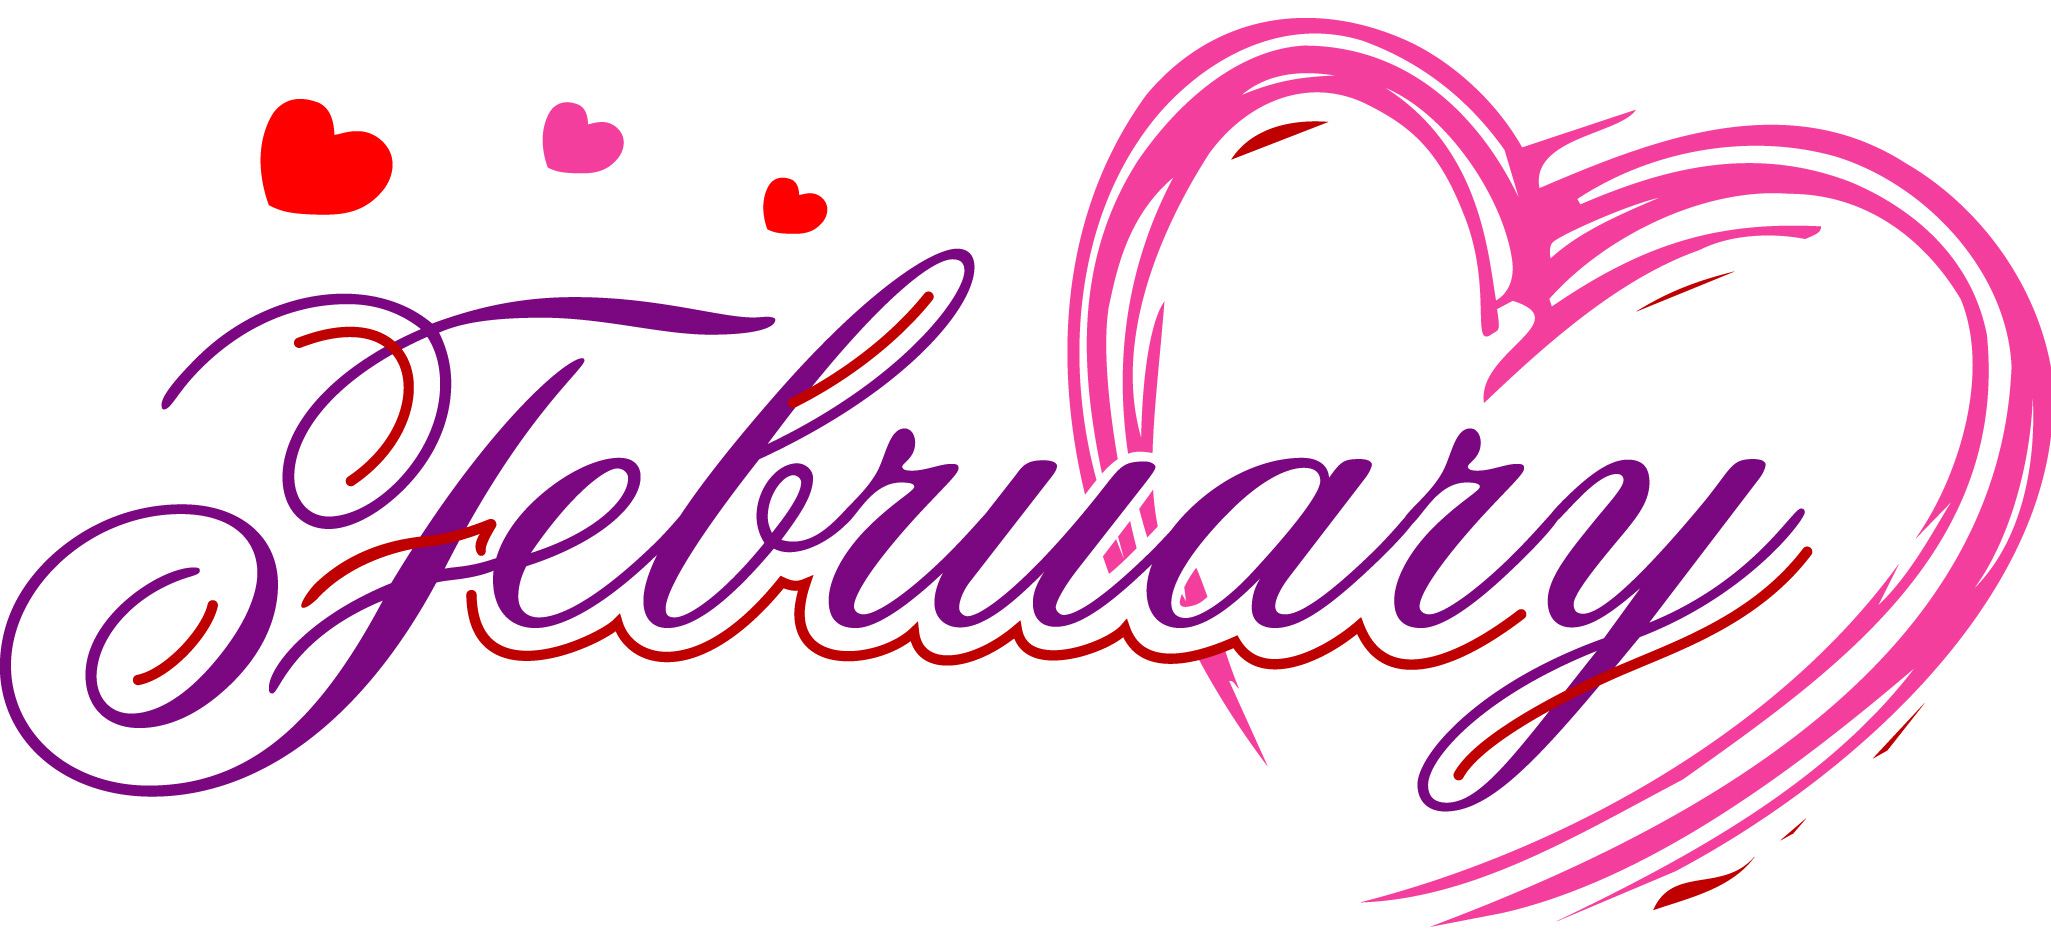 February clipart religious.